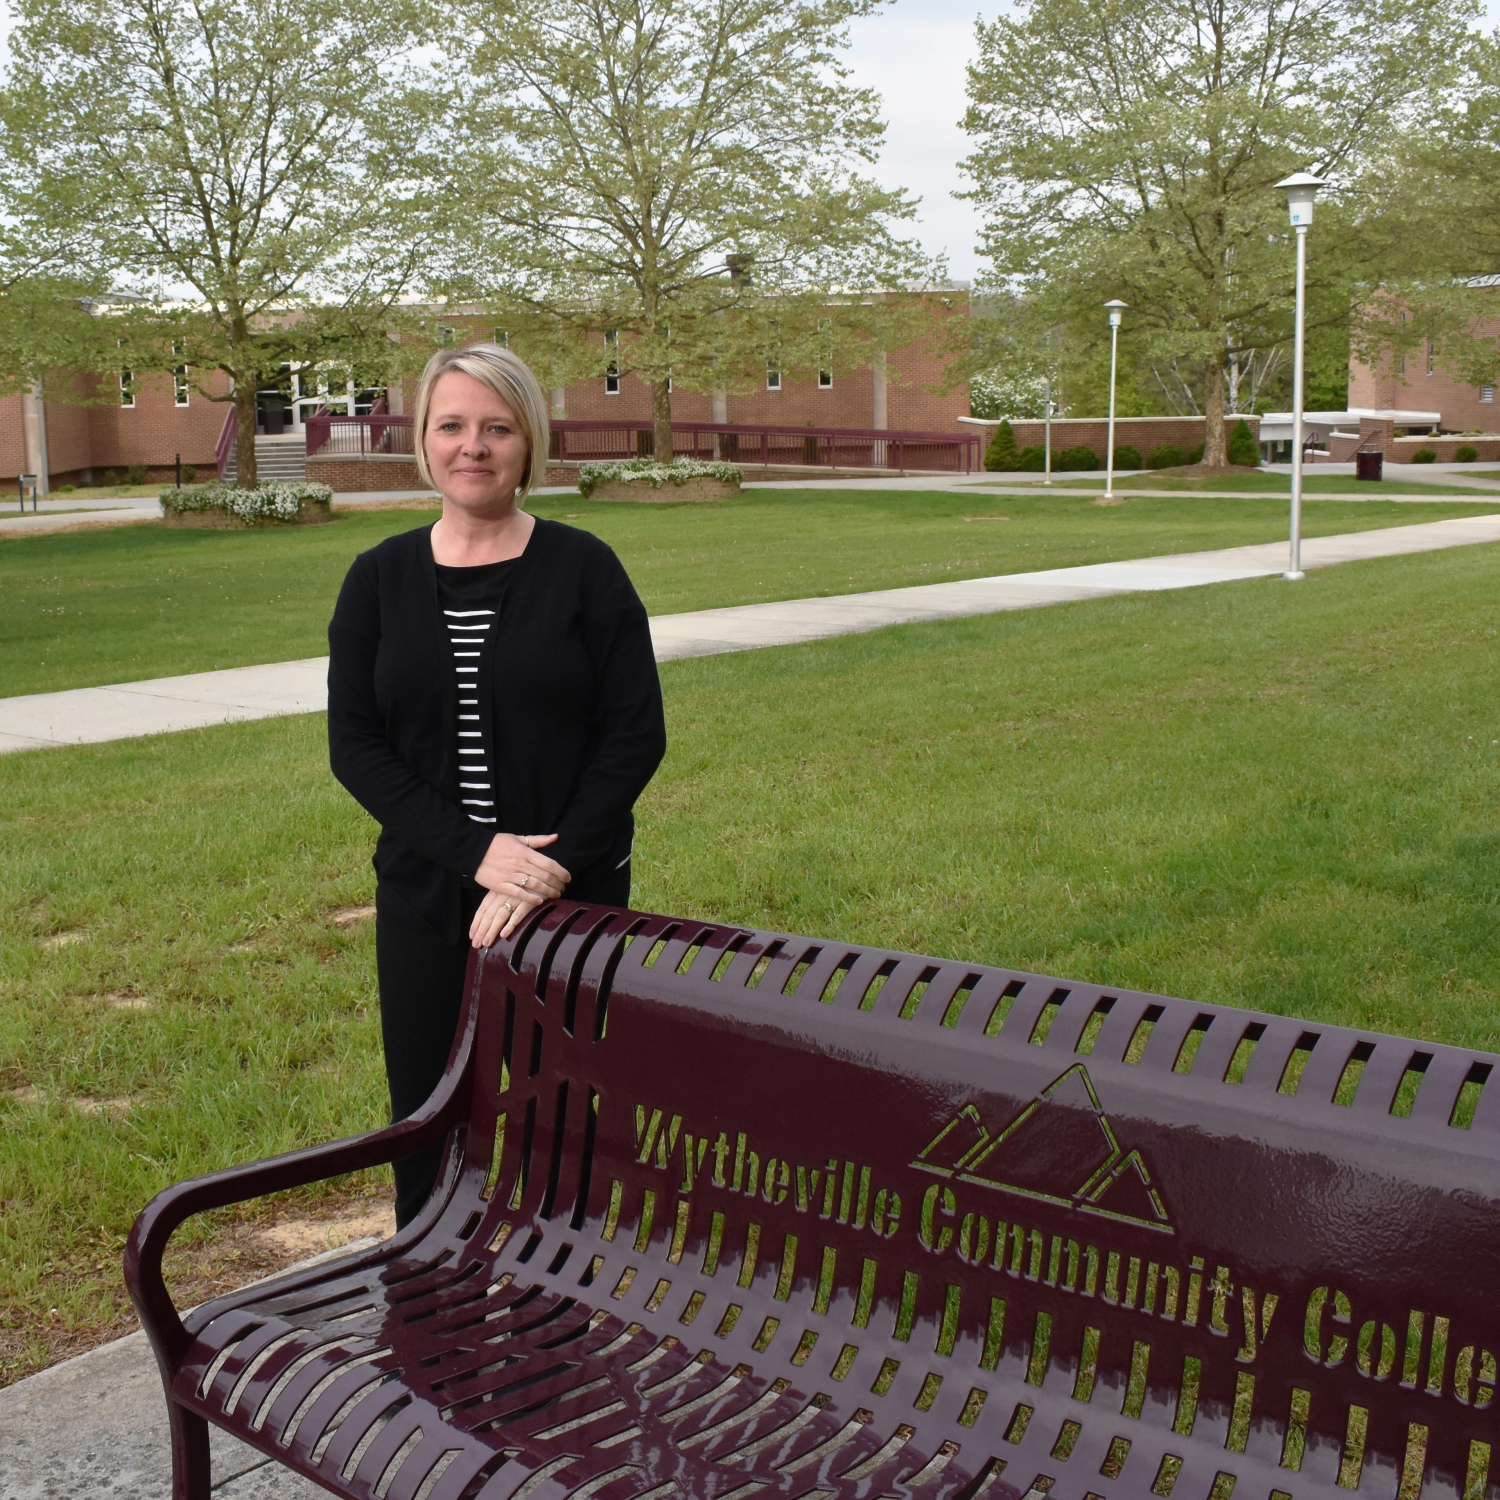 Wendy Nixon stadning outside on WCC's Wytheville Campus